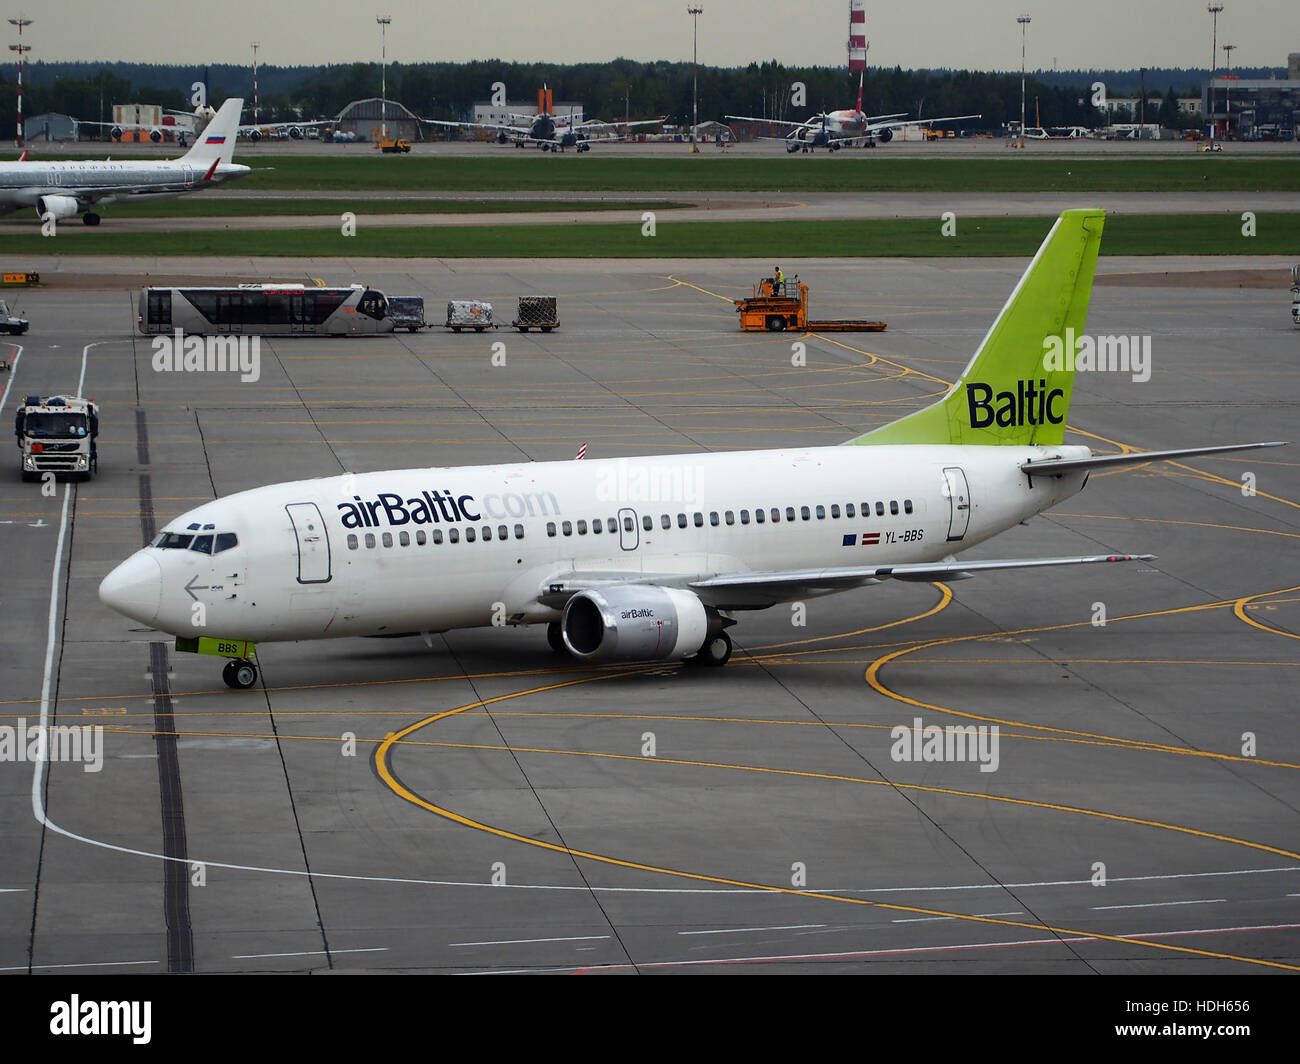 YL-BSS (airraft) at Sheremetyevo International Airport pic2 - Stock Image